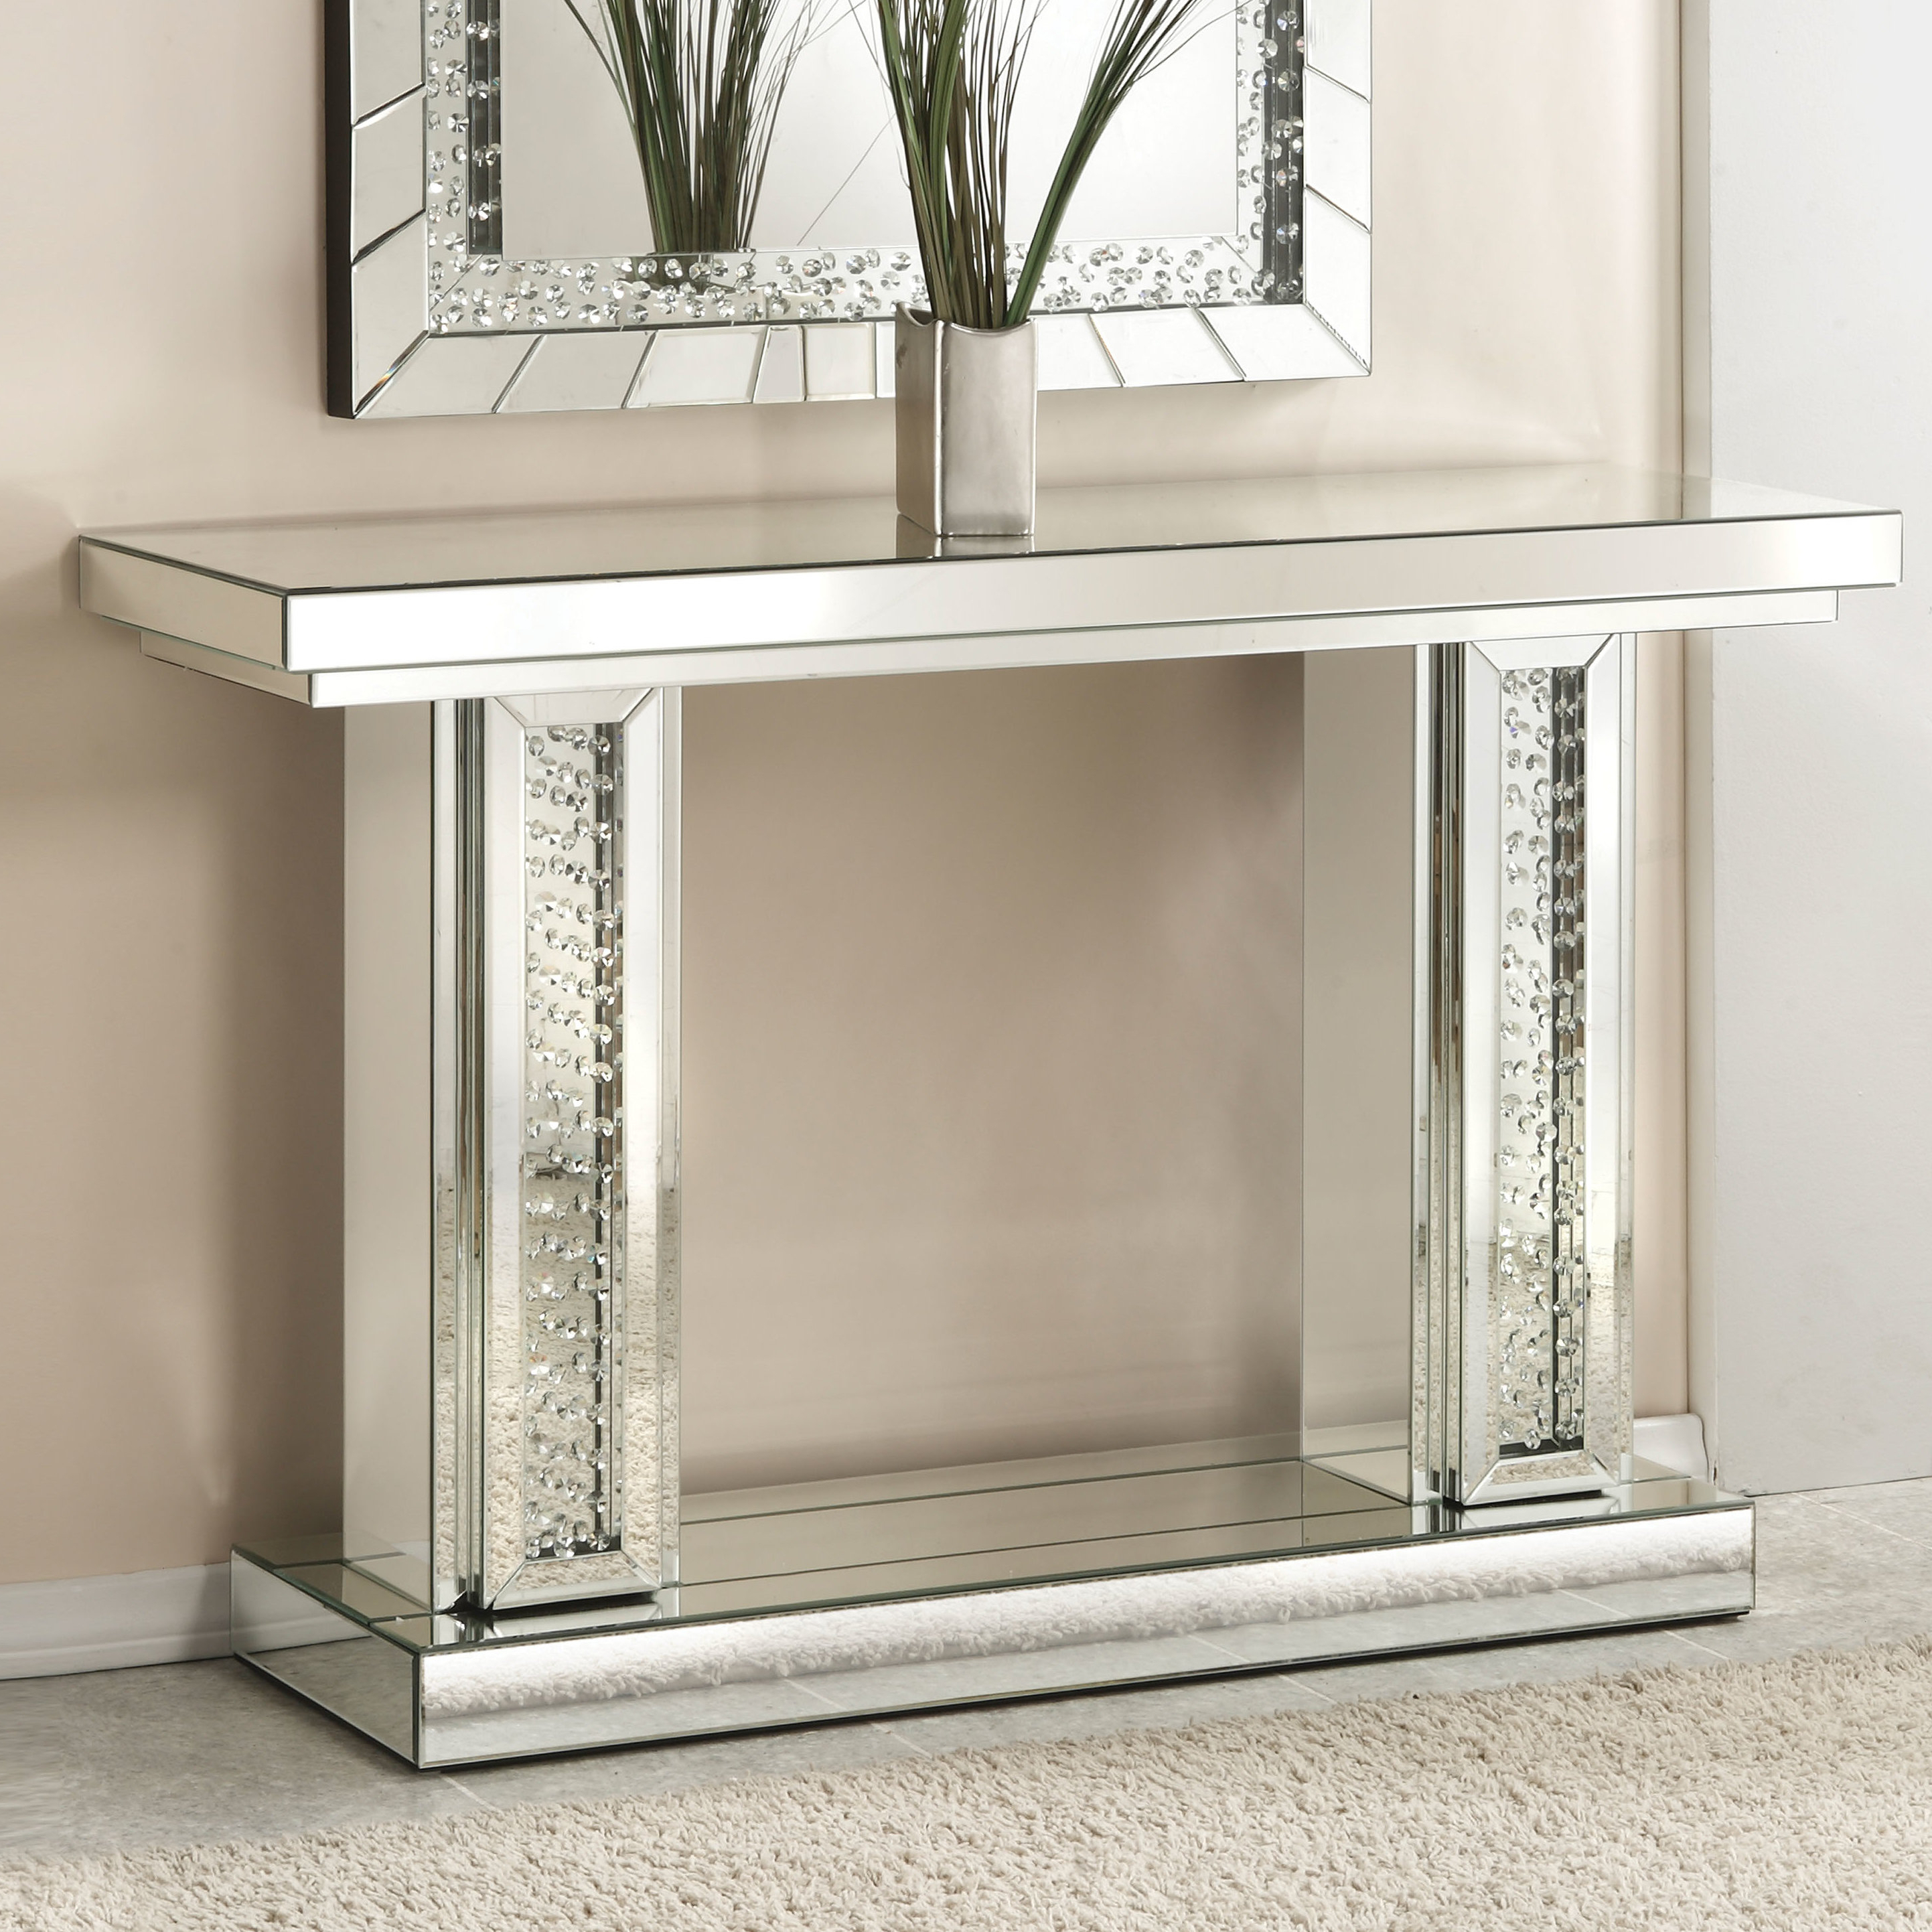 Rosdorf Park Longo Rectangle Mirrored Console Table & Reviews | Wayfair With Regard To Natural Wood Mirrored Media Console Tables (View 2 of 20)